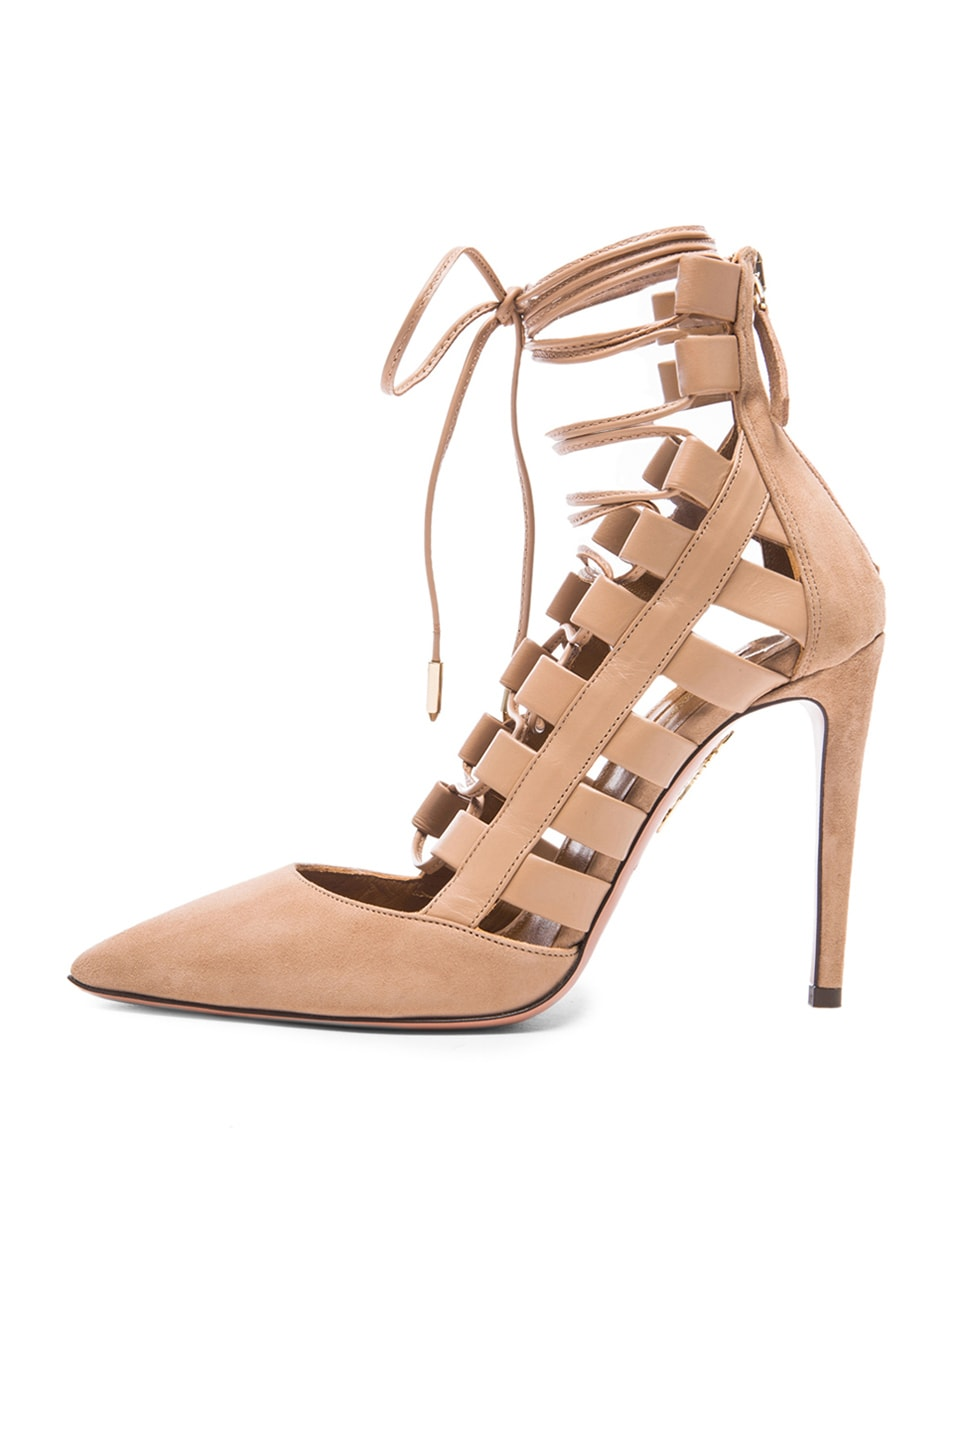 Image 5 of Aquazzura Amazon Suede Pumps in Biscotto